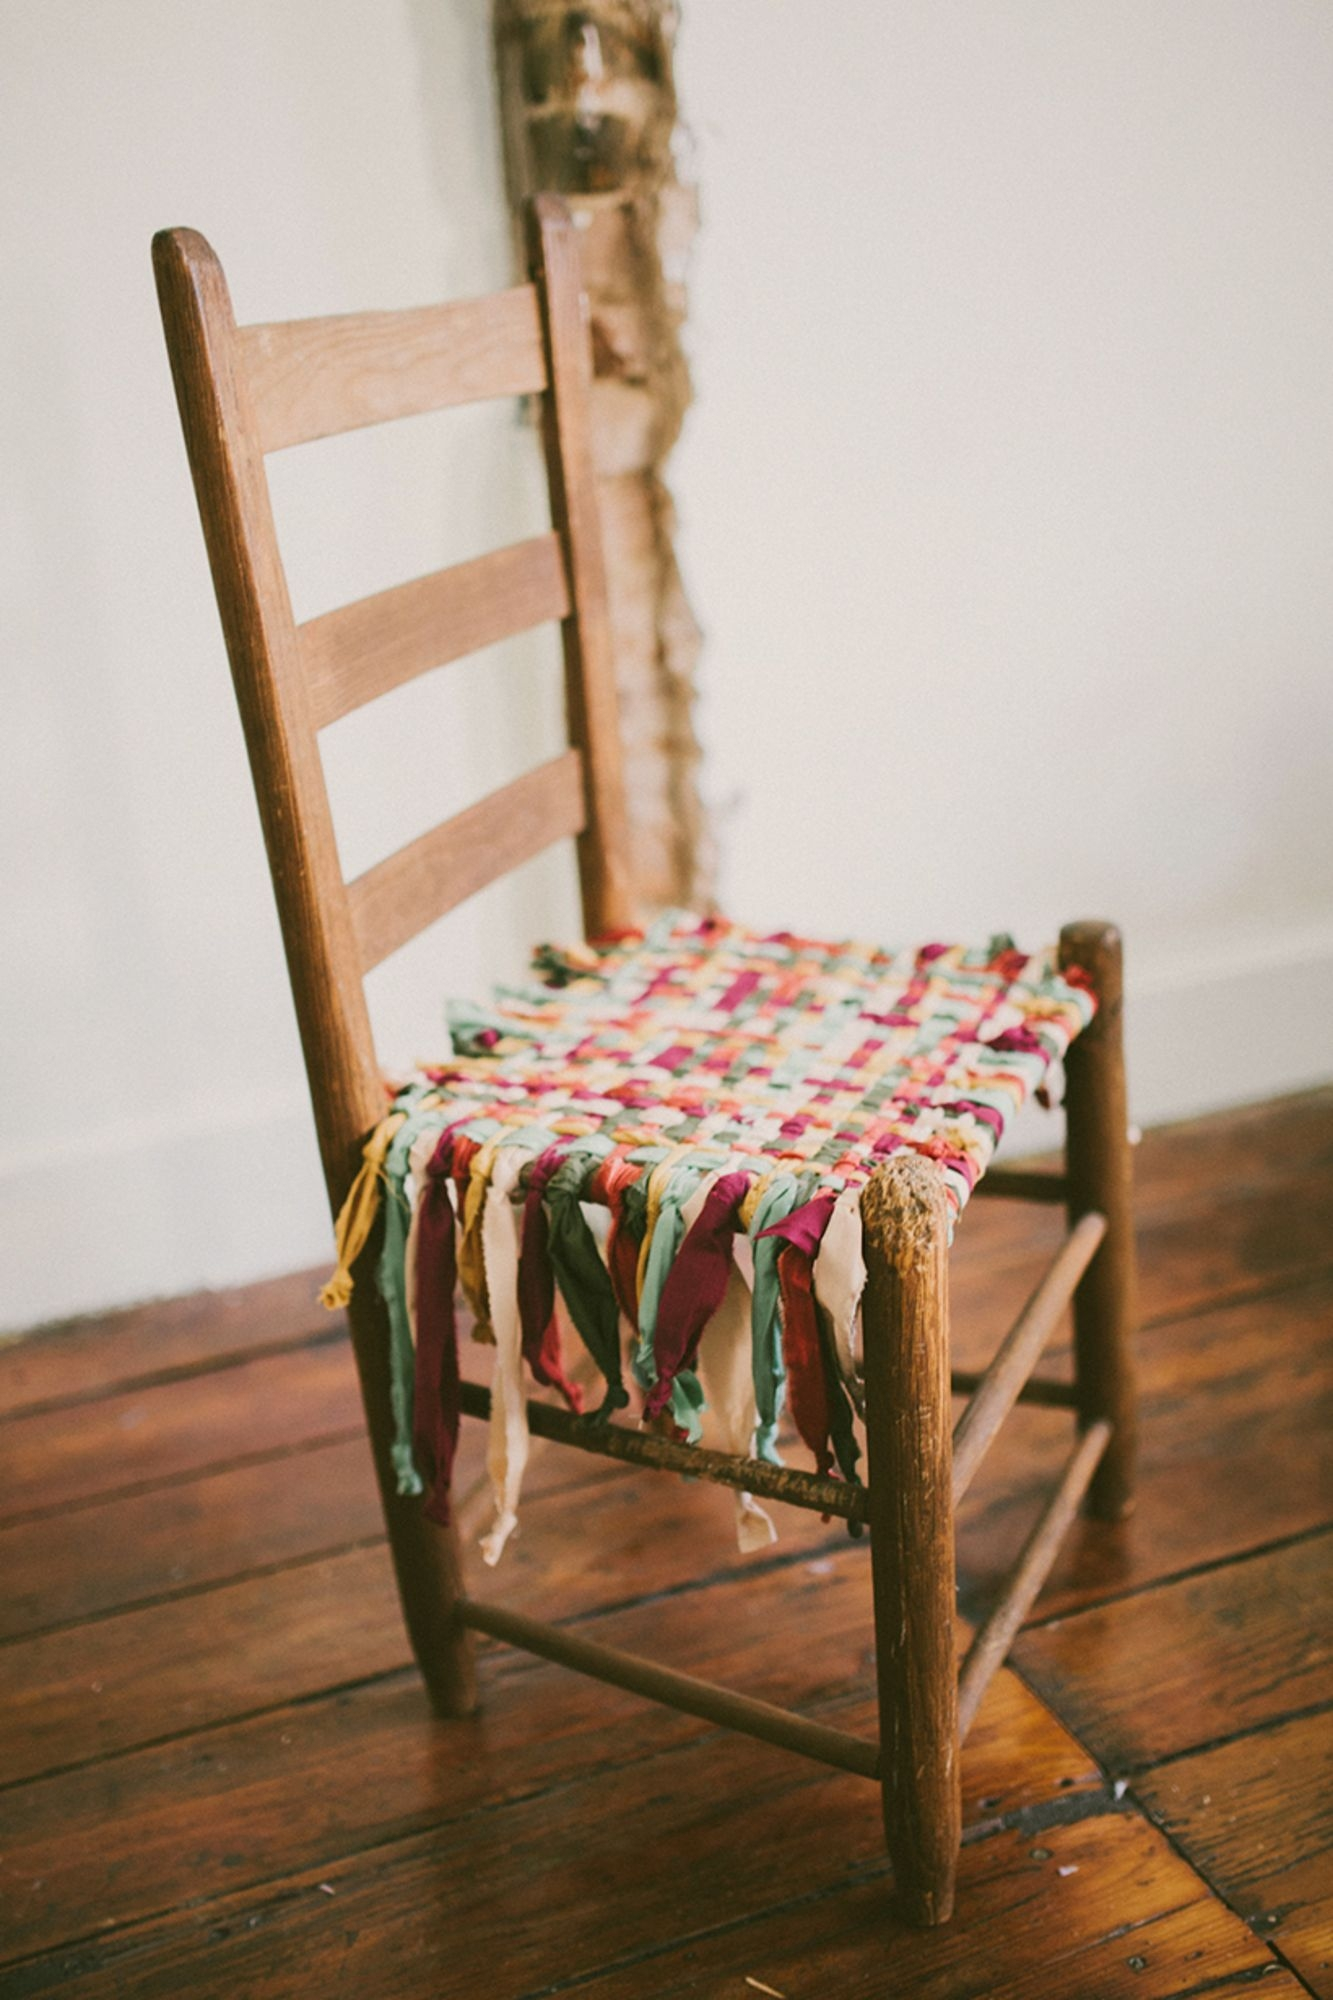 How To Weave A Chair Seat With Fabric